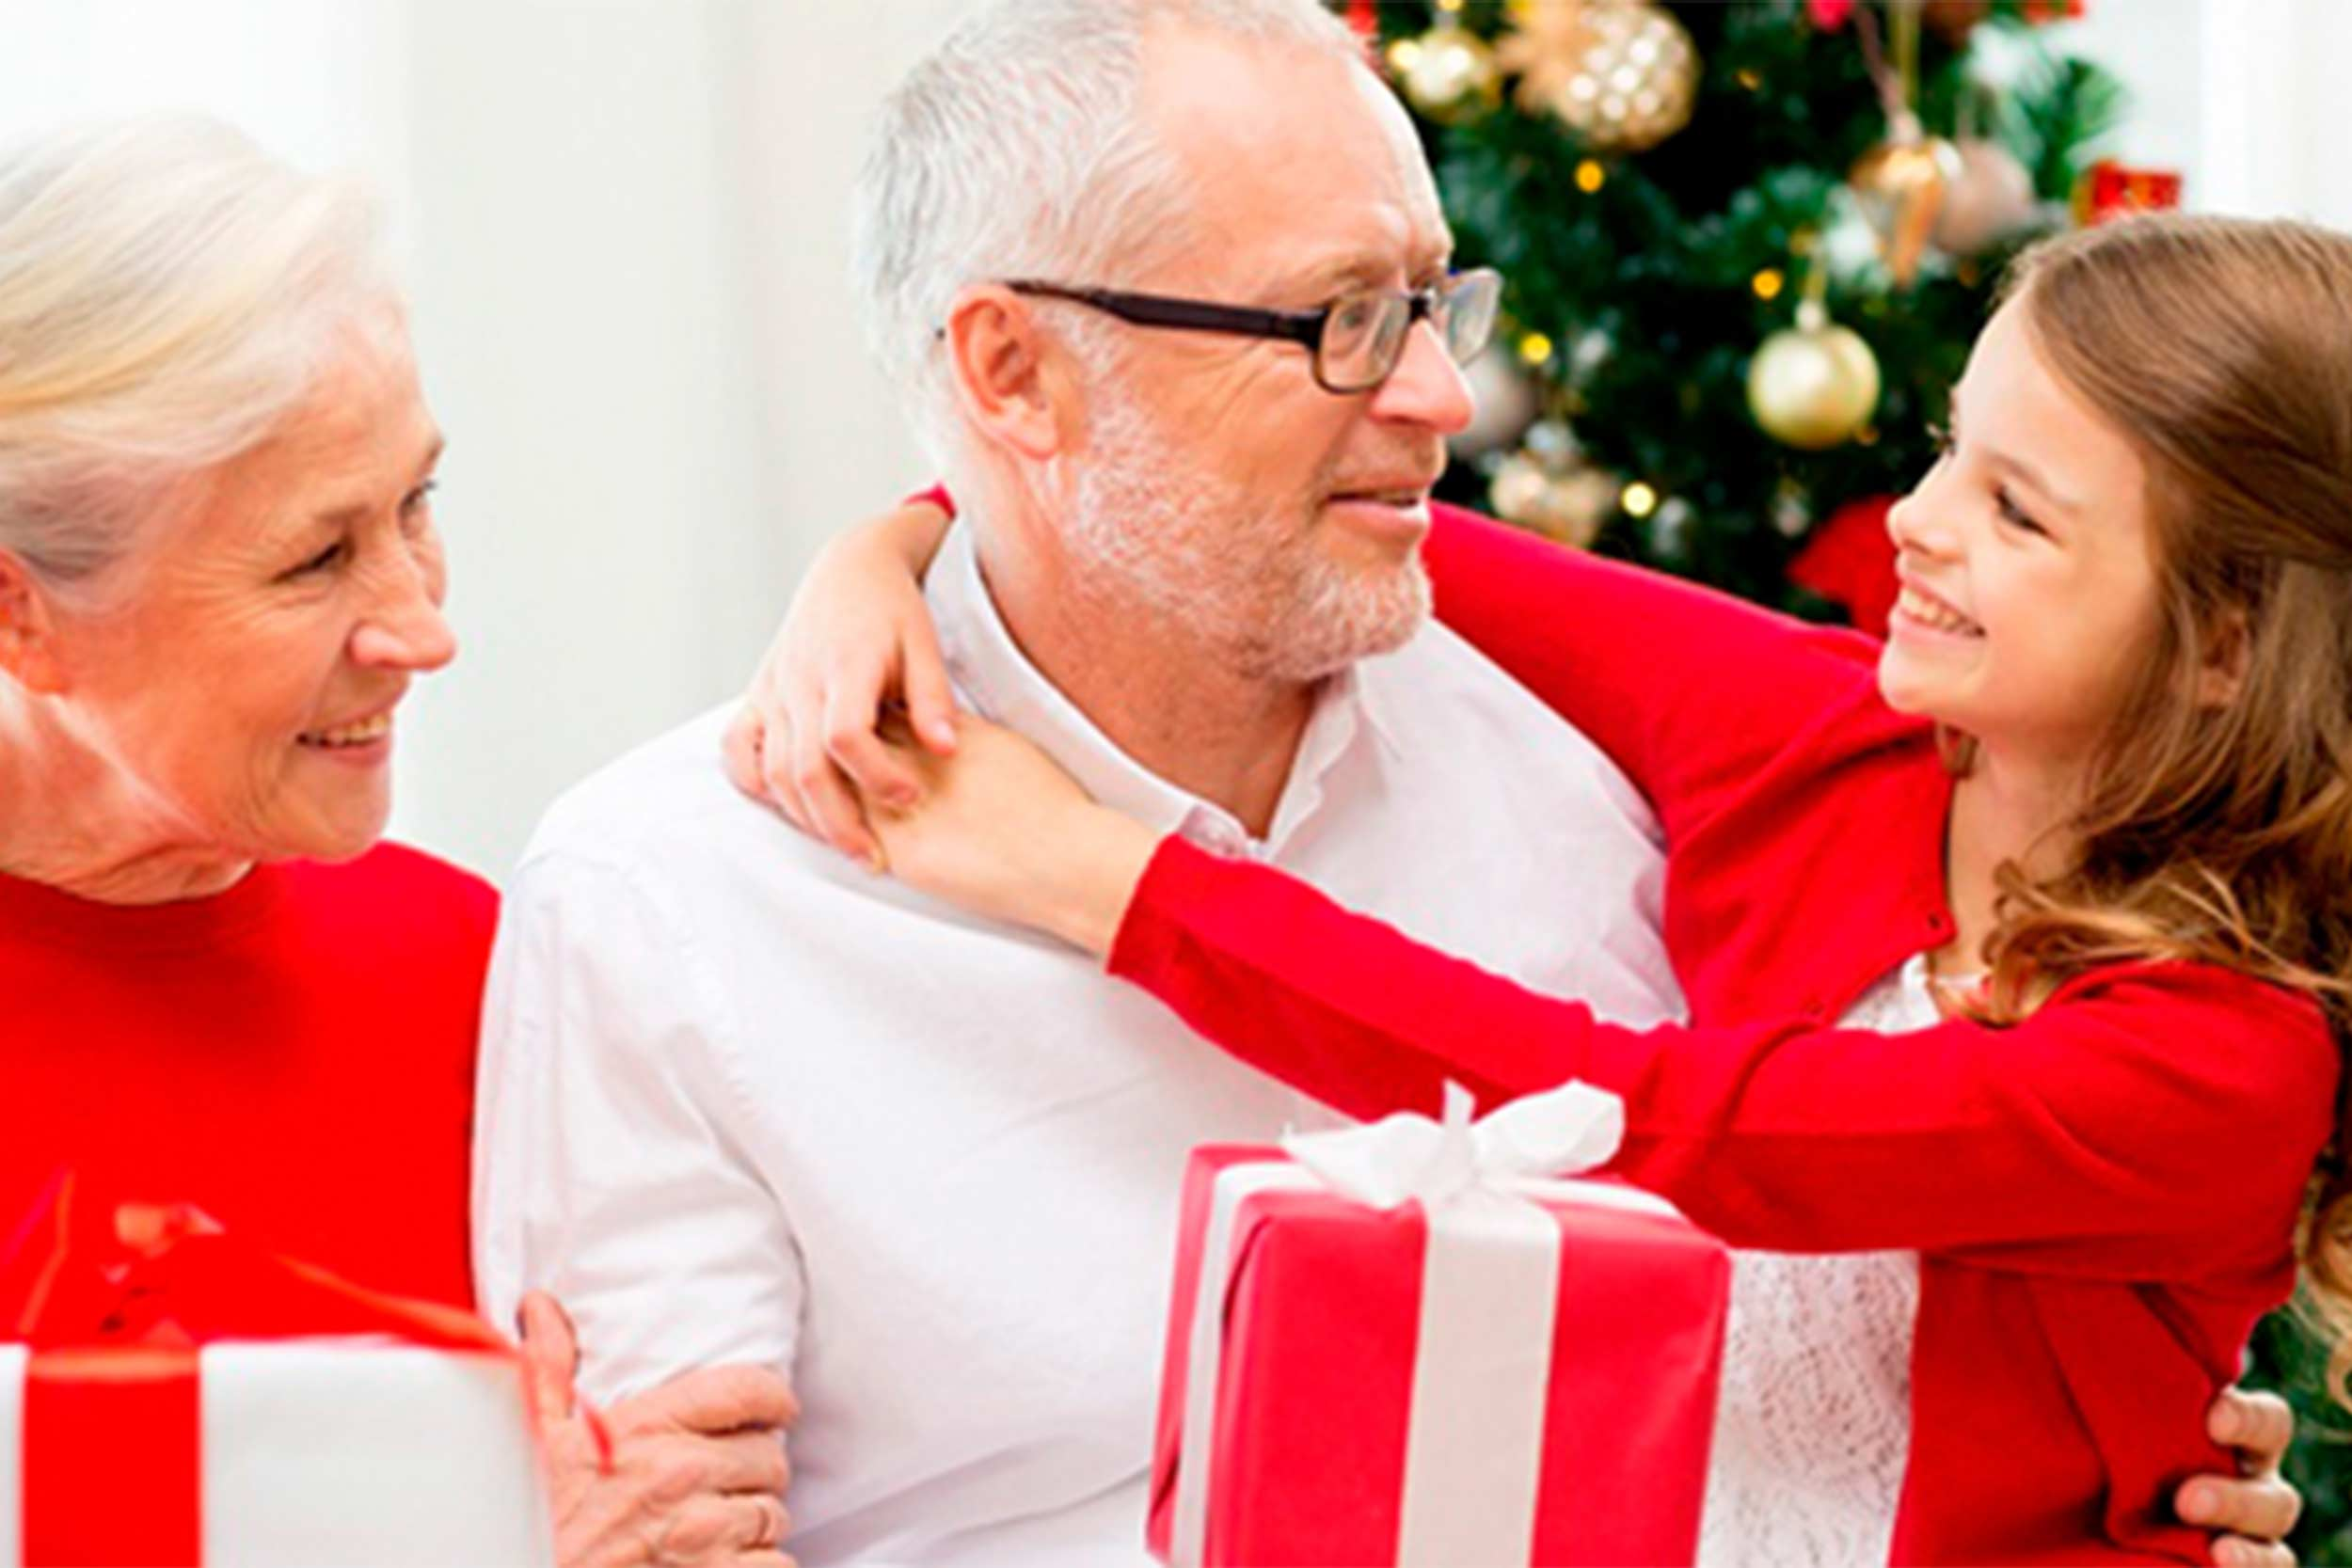 Dealing with Social Isolation and the Holidays